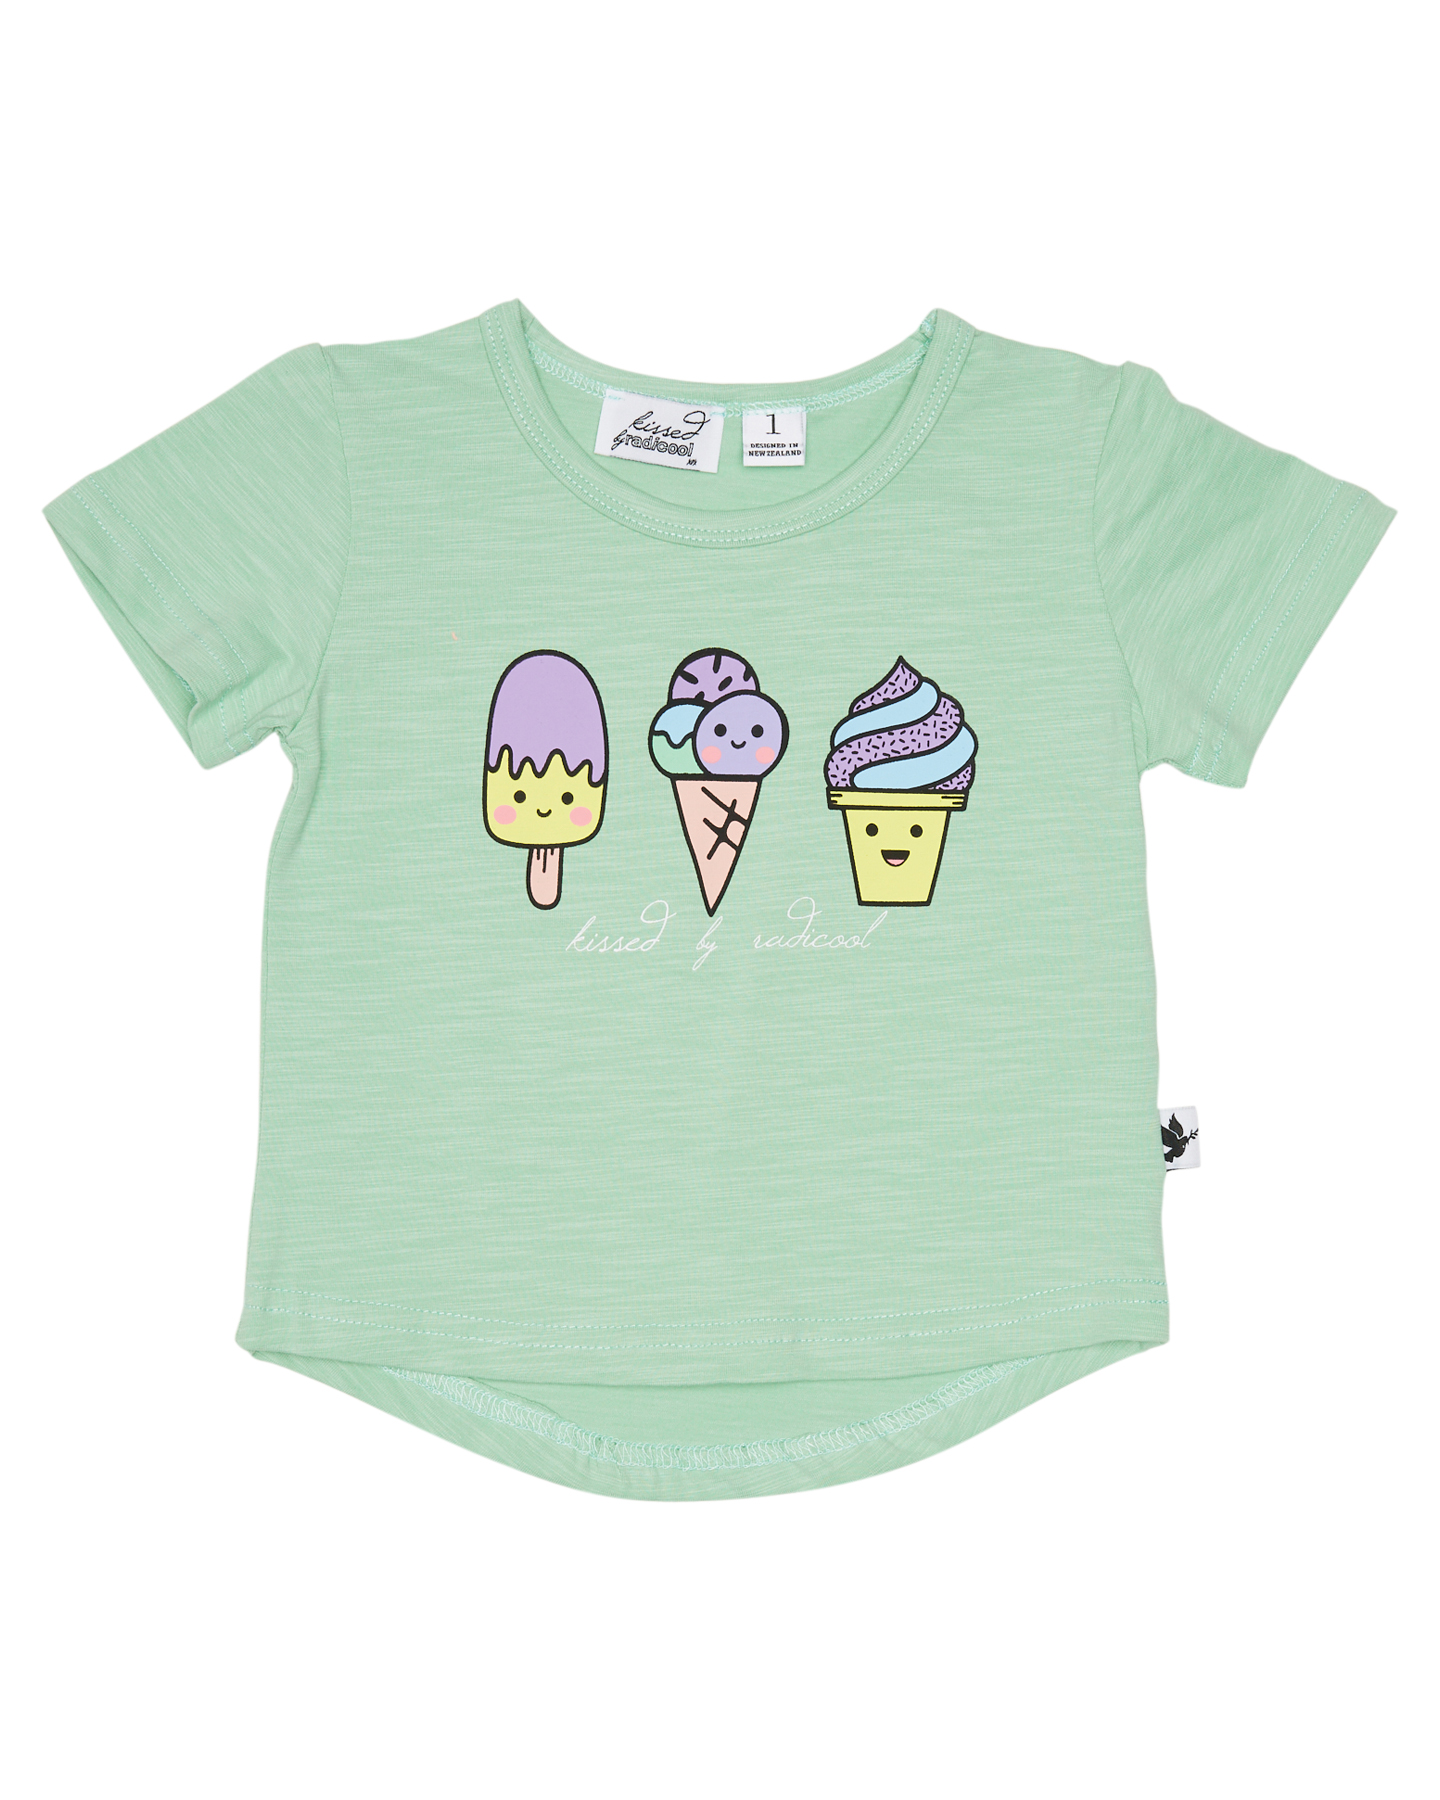 Kissed By Radicool Girls All The Flavours Tee Kids Mint Mint